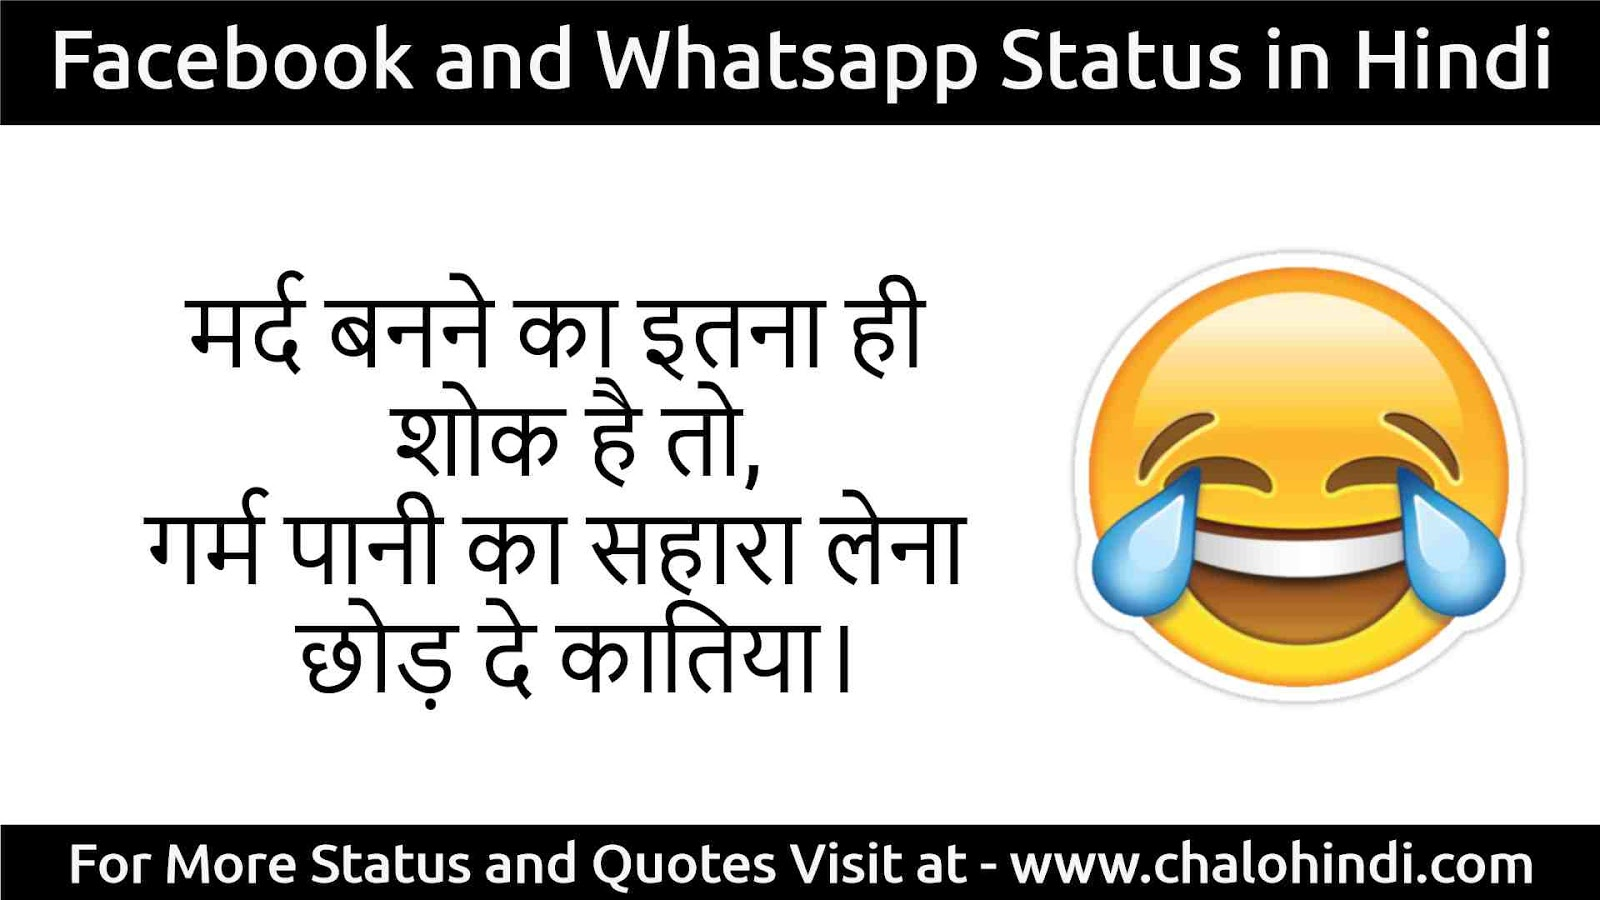 Status Whatsapp: Top 31 Awesome Status For Facebook And Whatsapp In Hindi